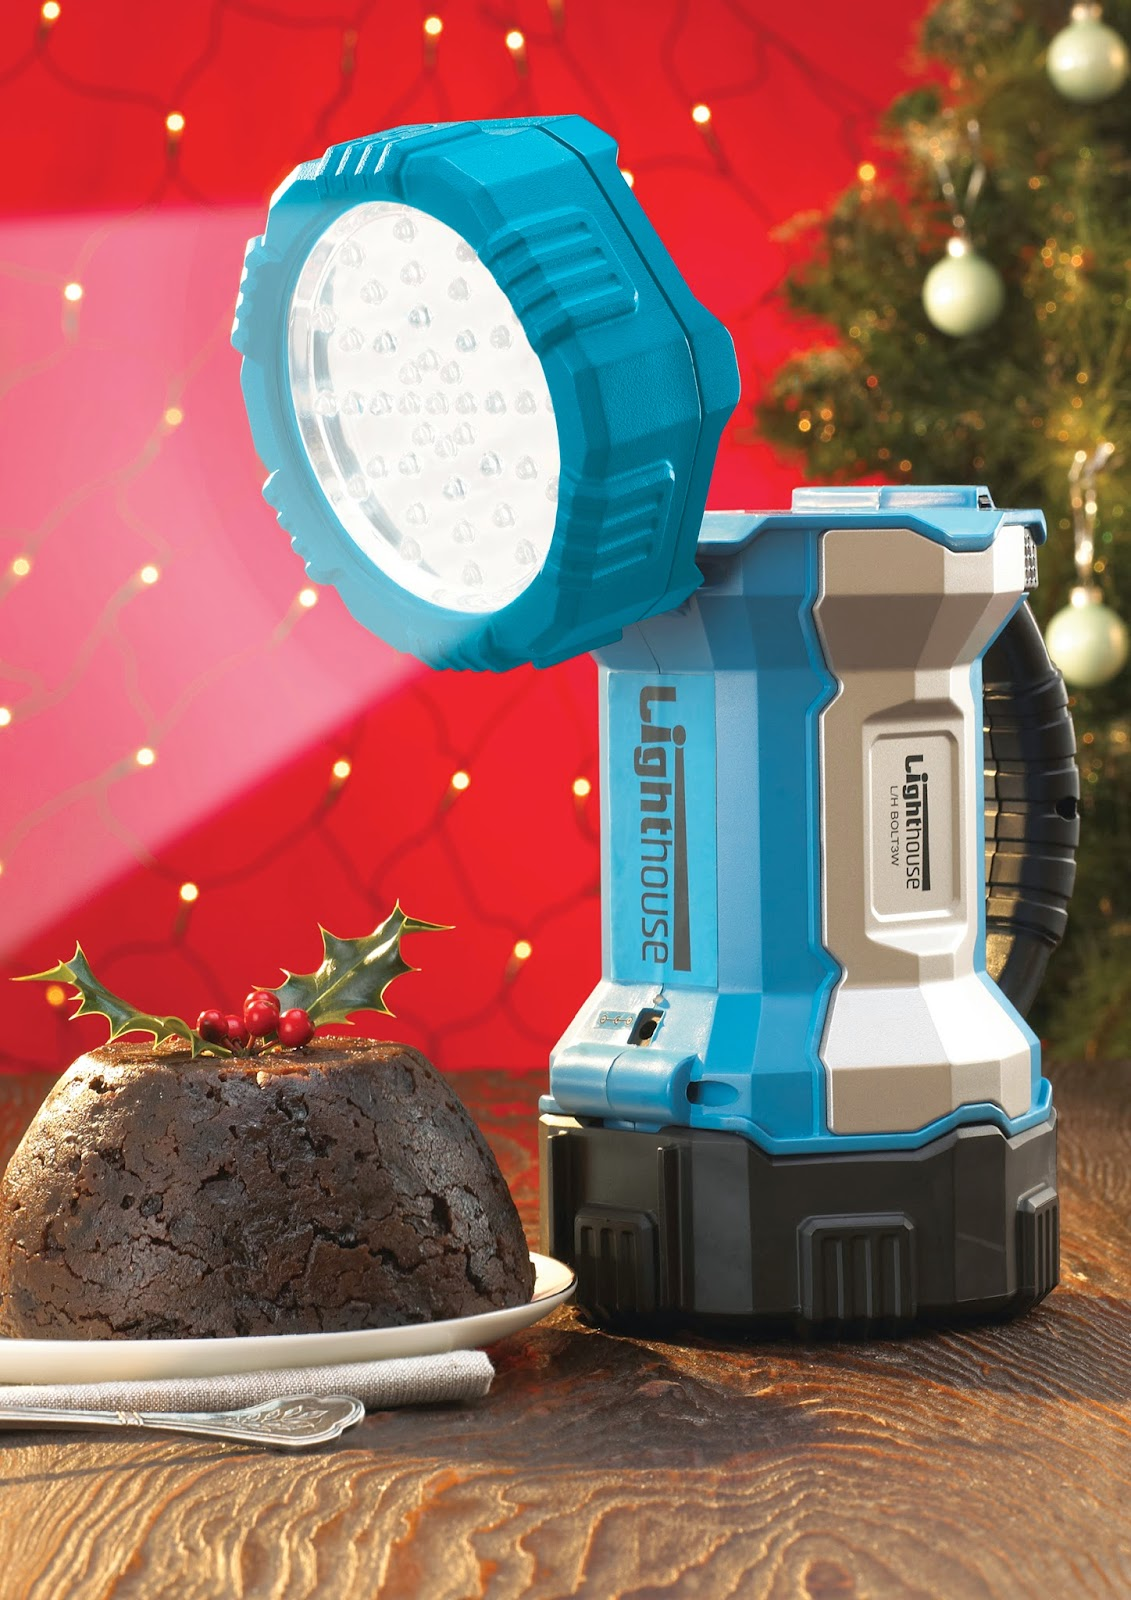 http://www.beesleyandfildes.co.uk/lighthouse-bolt-2-re-chargable-lantern-with-detachable-head-ref-xms14newbolt/